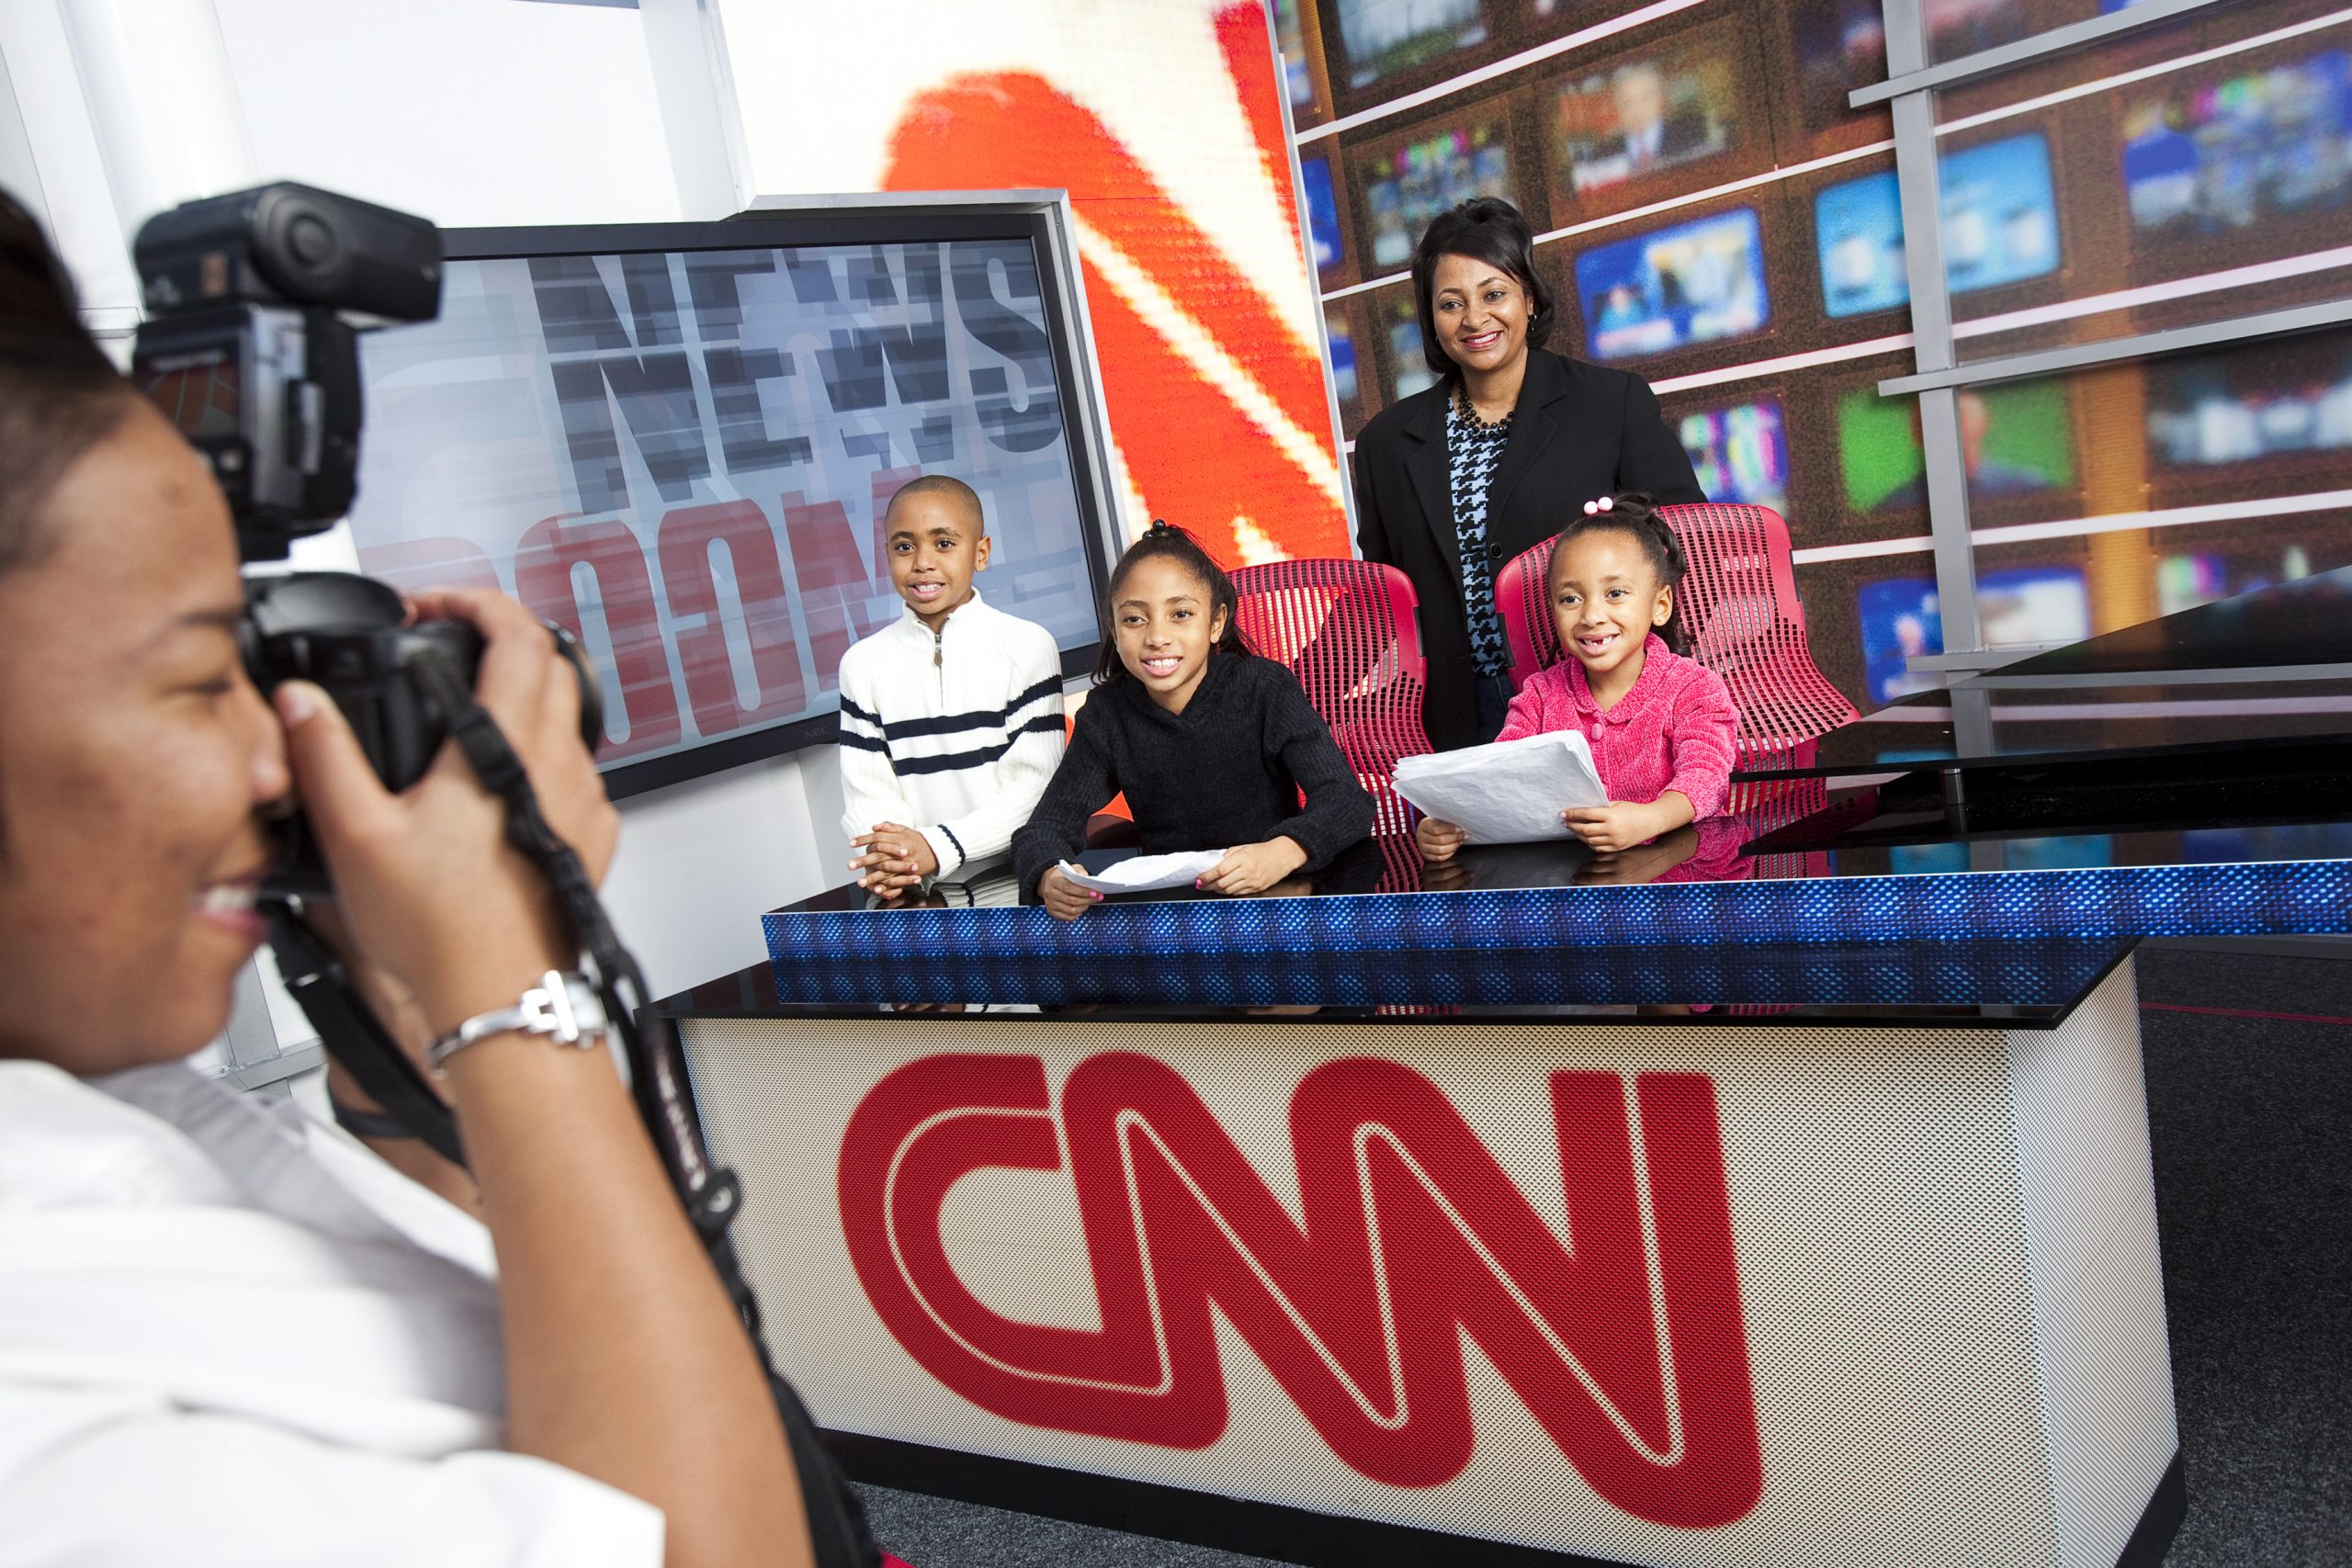 Sit behind the anchor desk and find your inner journalist at the CNN Studio Tour in Atlanta